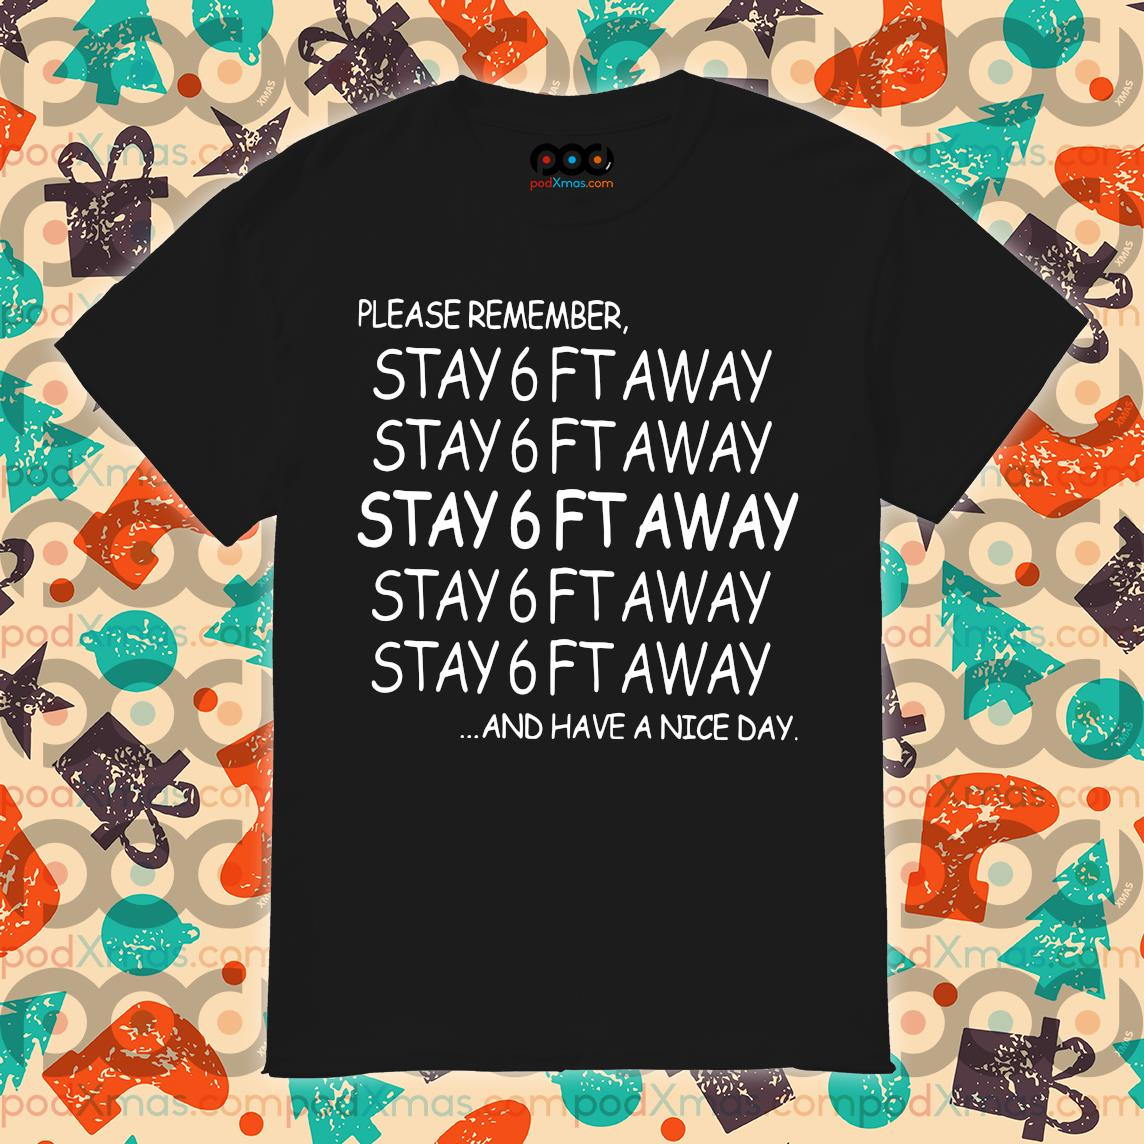 Please remember stay 6ft away and have a nice day shirt